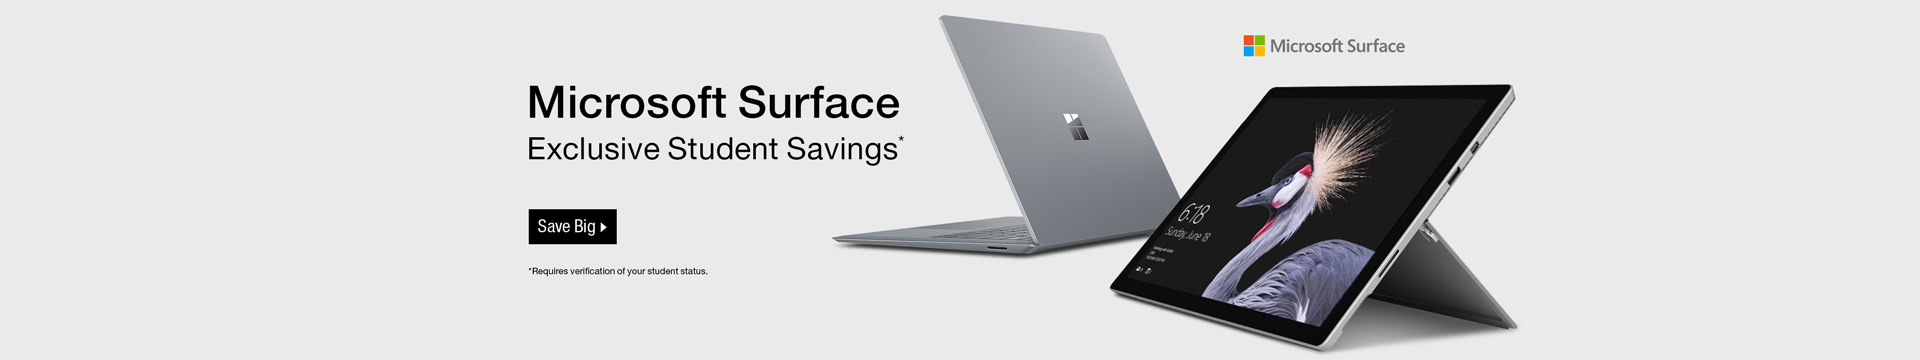 Microsoft Surface Student